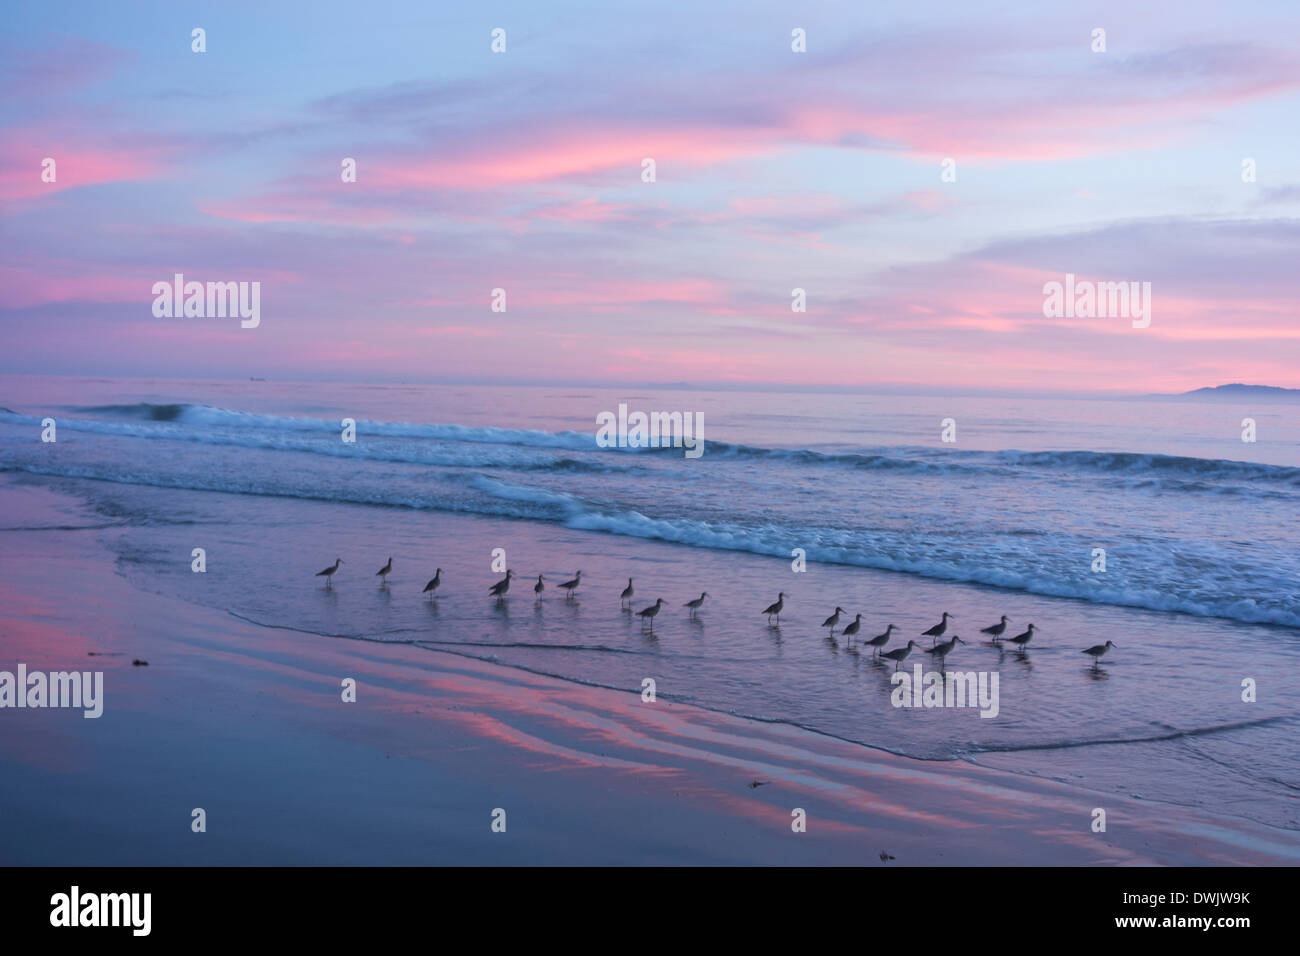 sandpipers at sunset on beach at sunset along the pacific Ocean on the Central Coast of California near Santa Barbara, USA - Stock Image